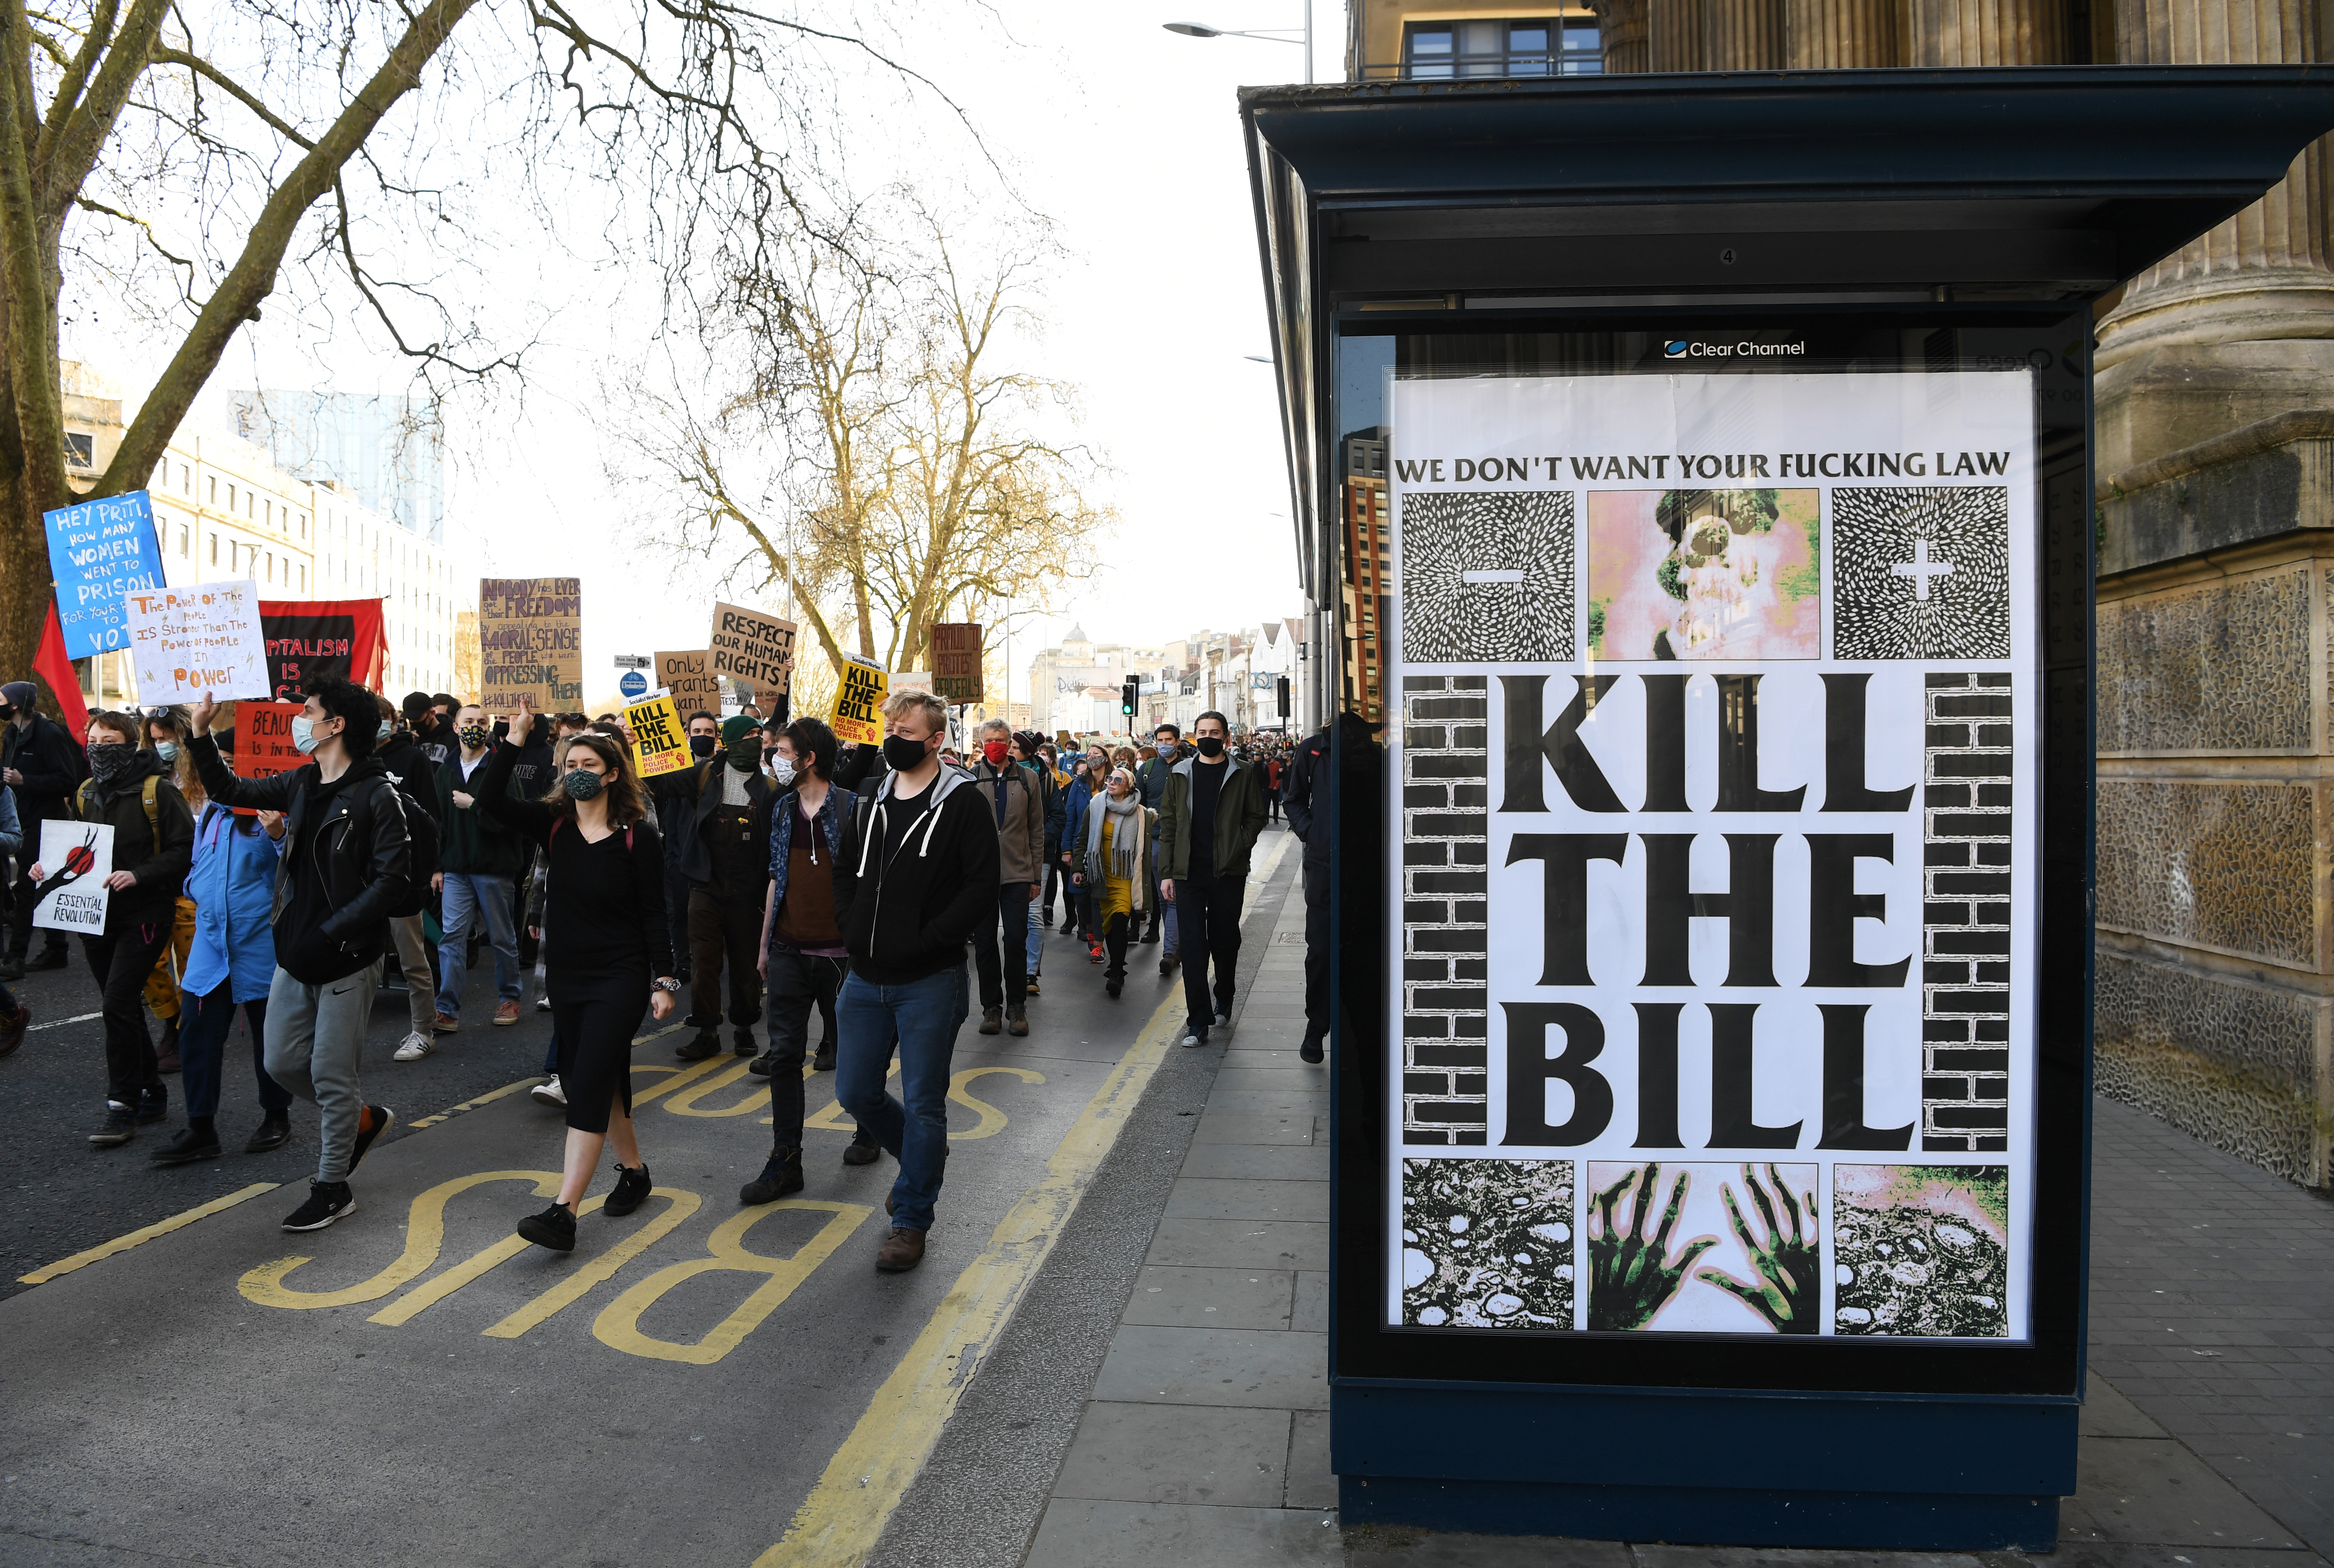 """A crowd of protesters carrying signs march down a street, with a large poster reading """"Kill The Bill"""" nearby."""